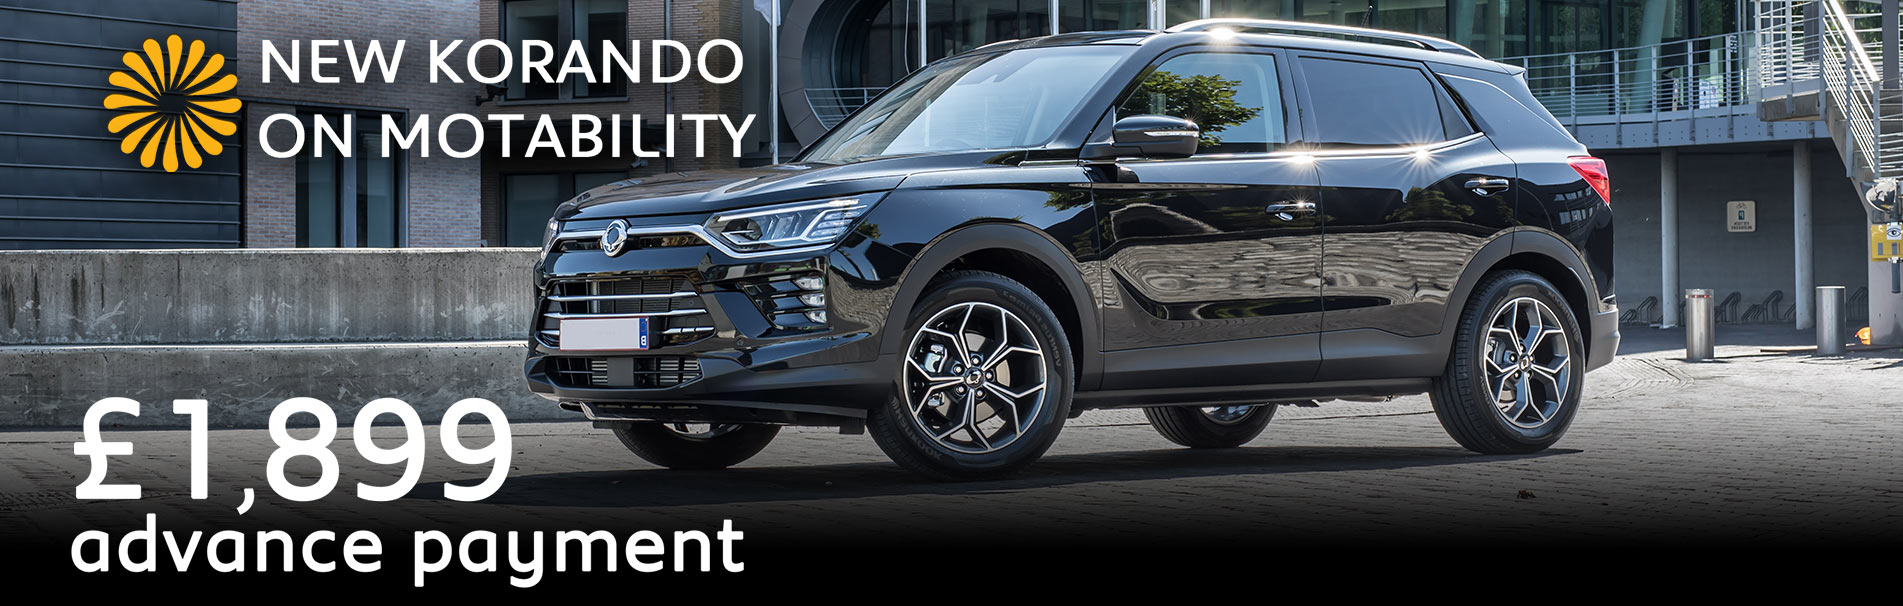 new-ssangyong-korando-on-motability-sli